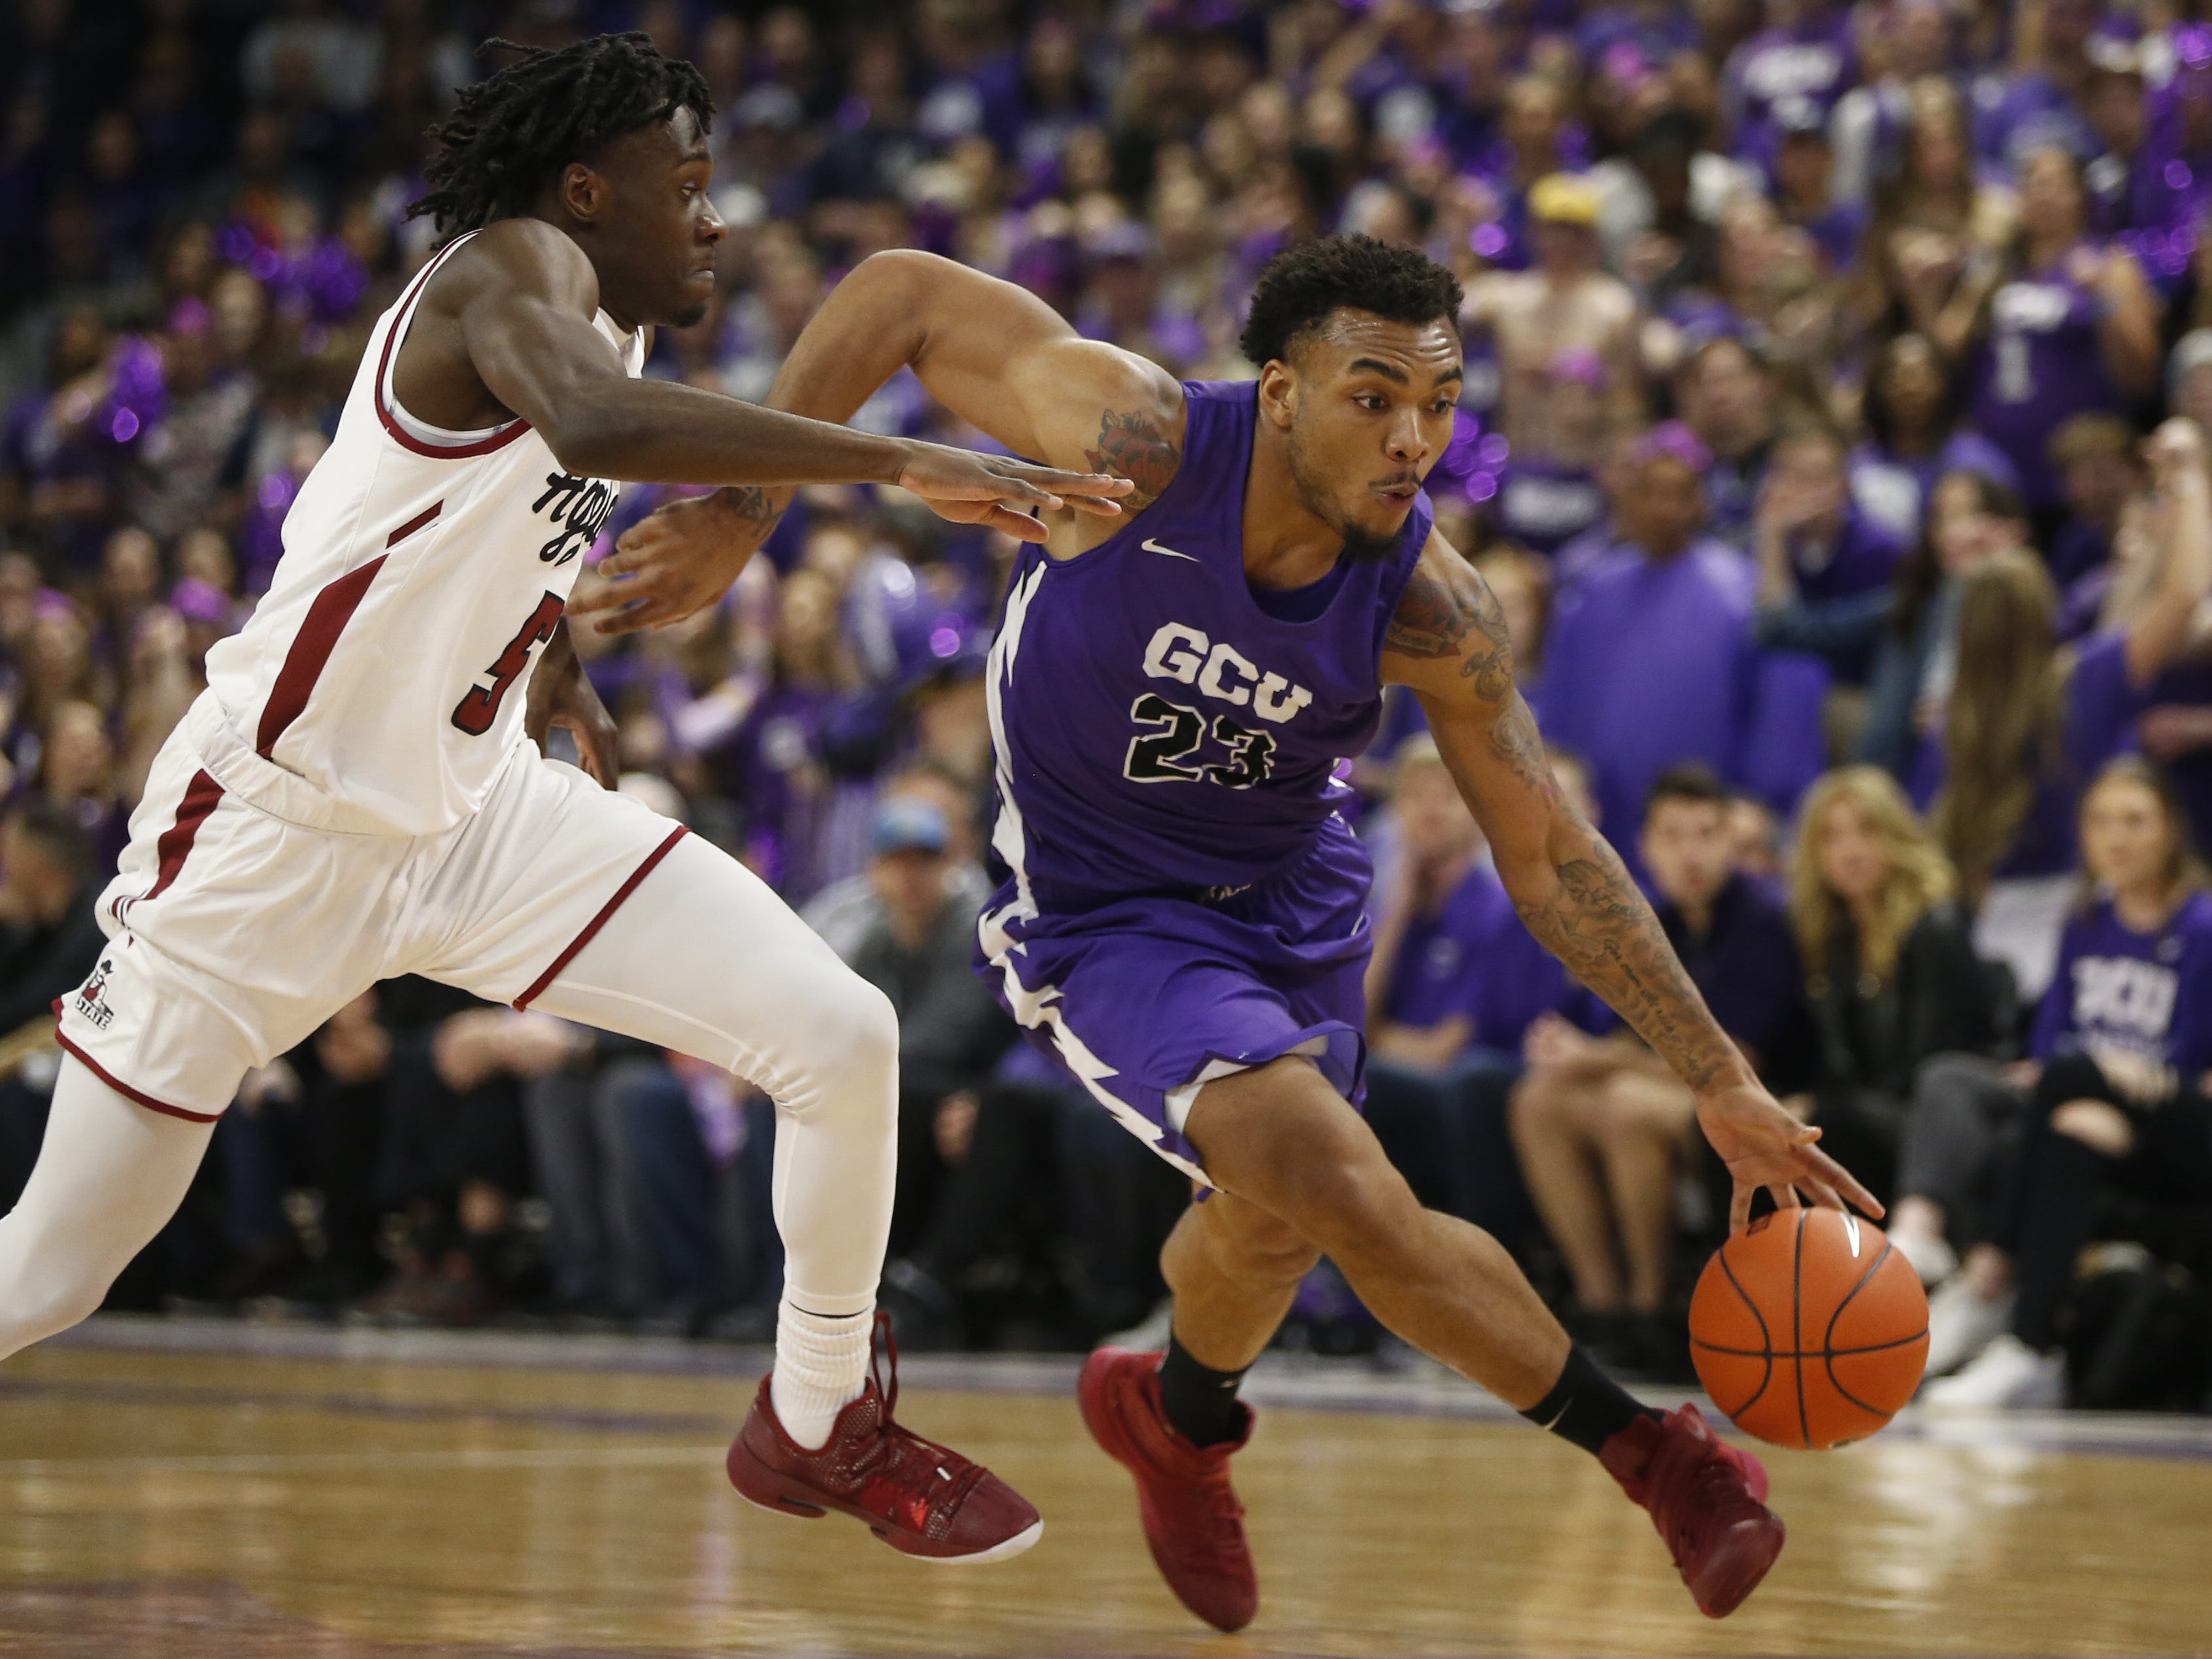 GCU's Carlos Johnson (23) drives against New Mexico State's Clayton Henry (5) during the first half at Grand Canyon University Arena in Phoenix, Ariz. on February 9, 2019.